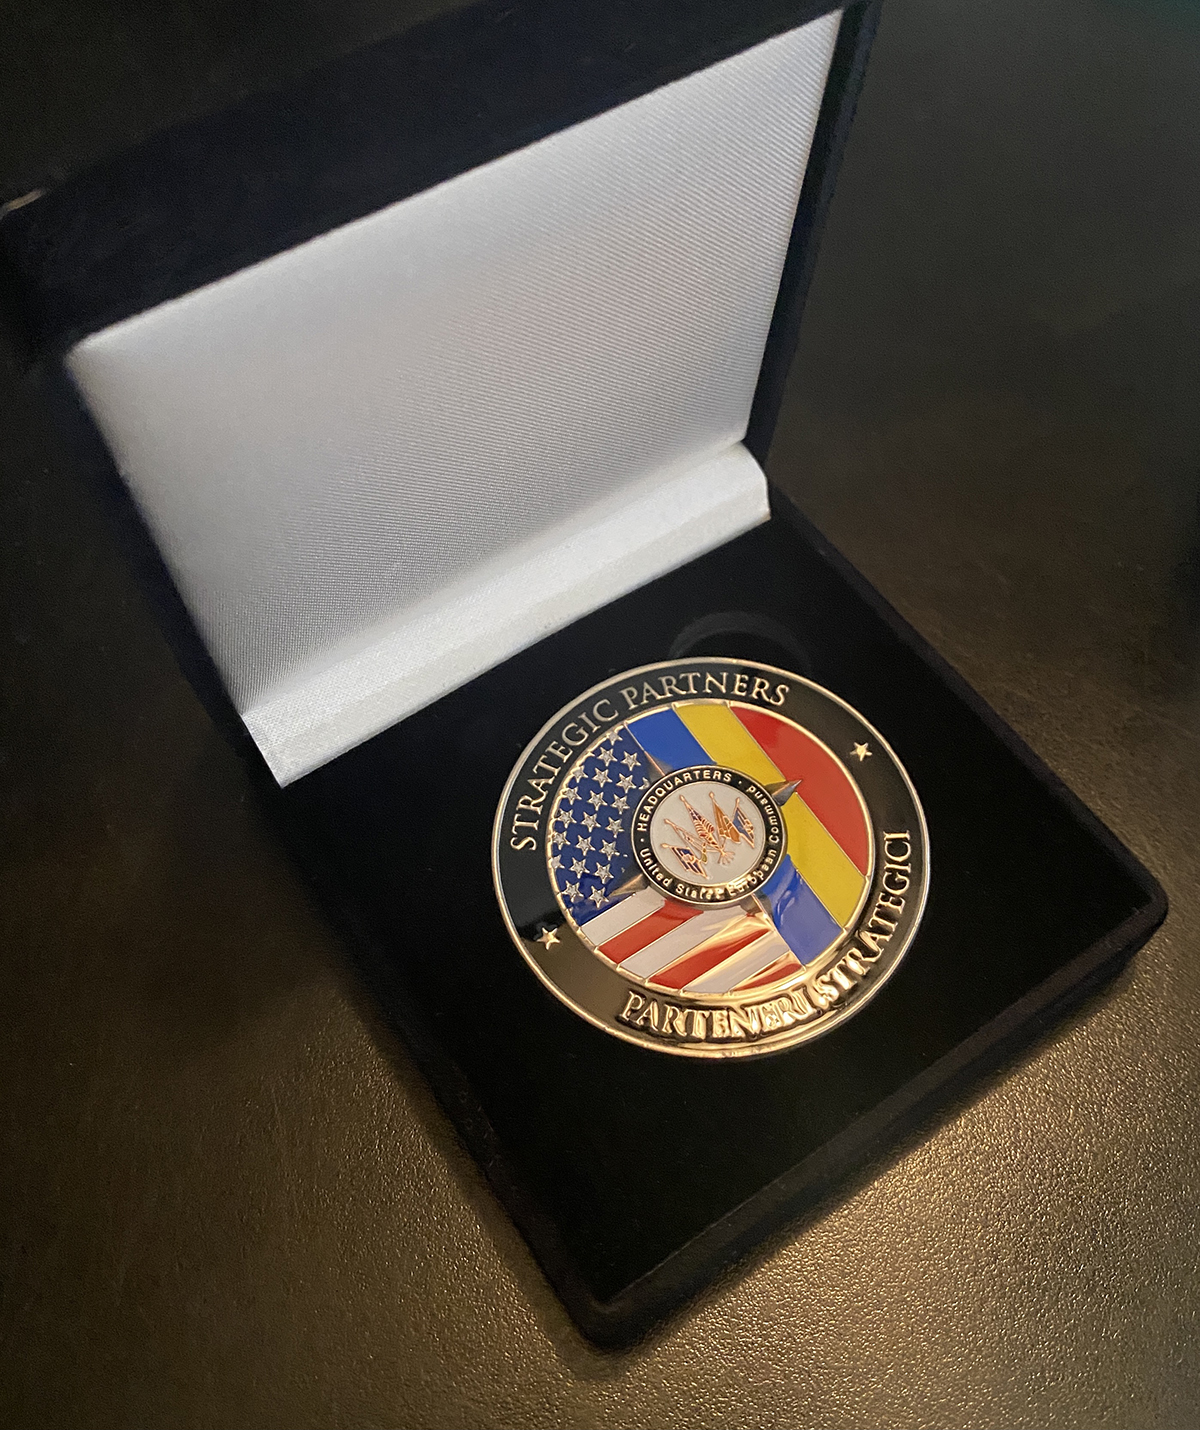 Eucom Romania coin in case